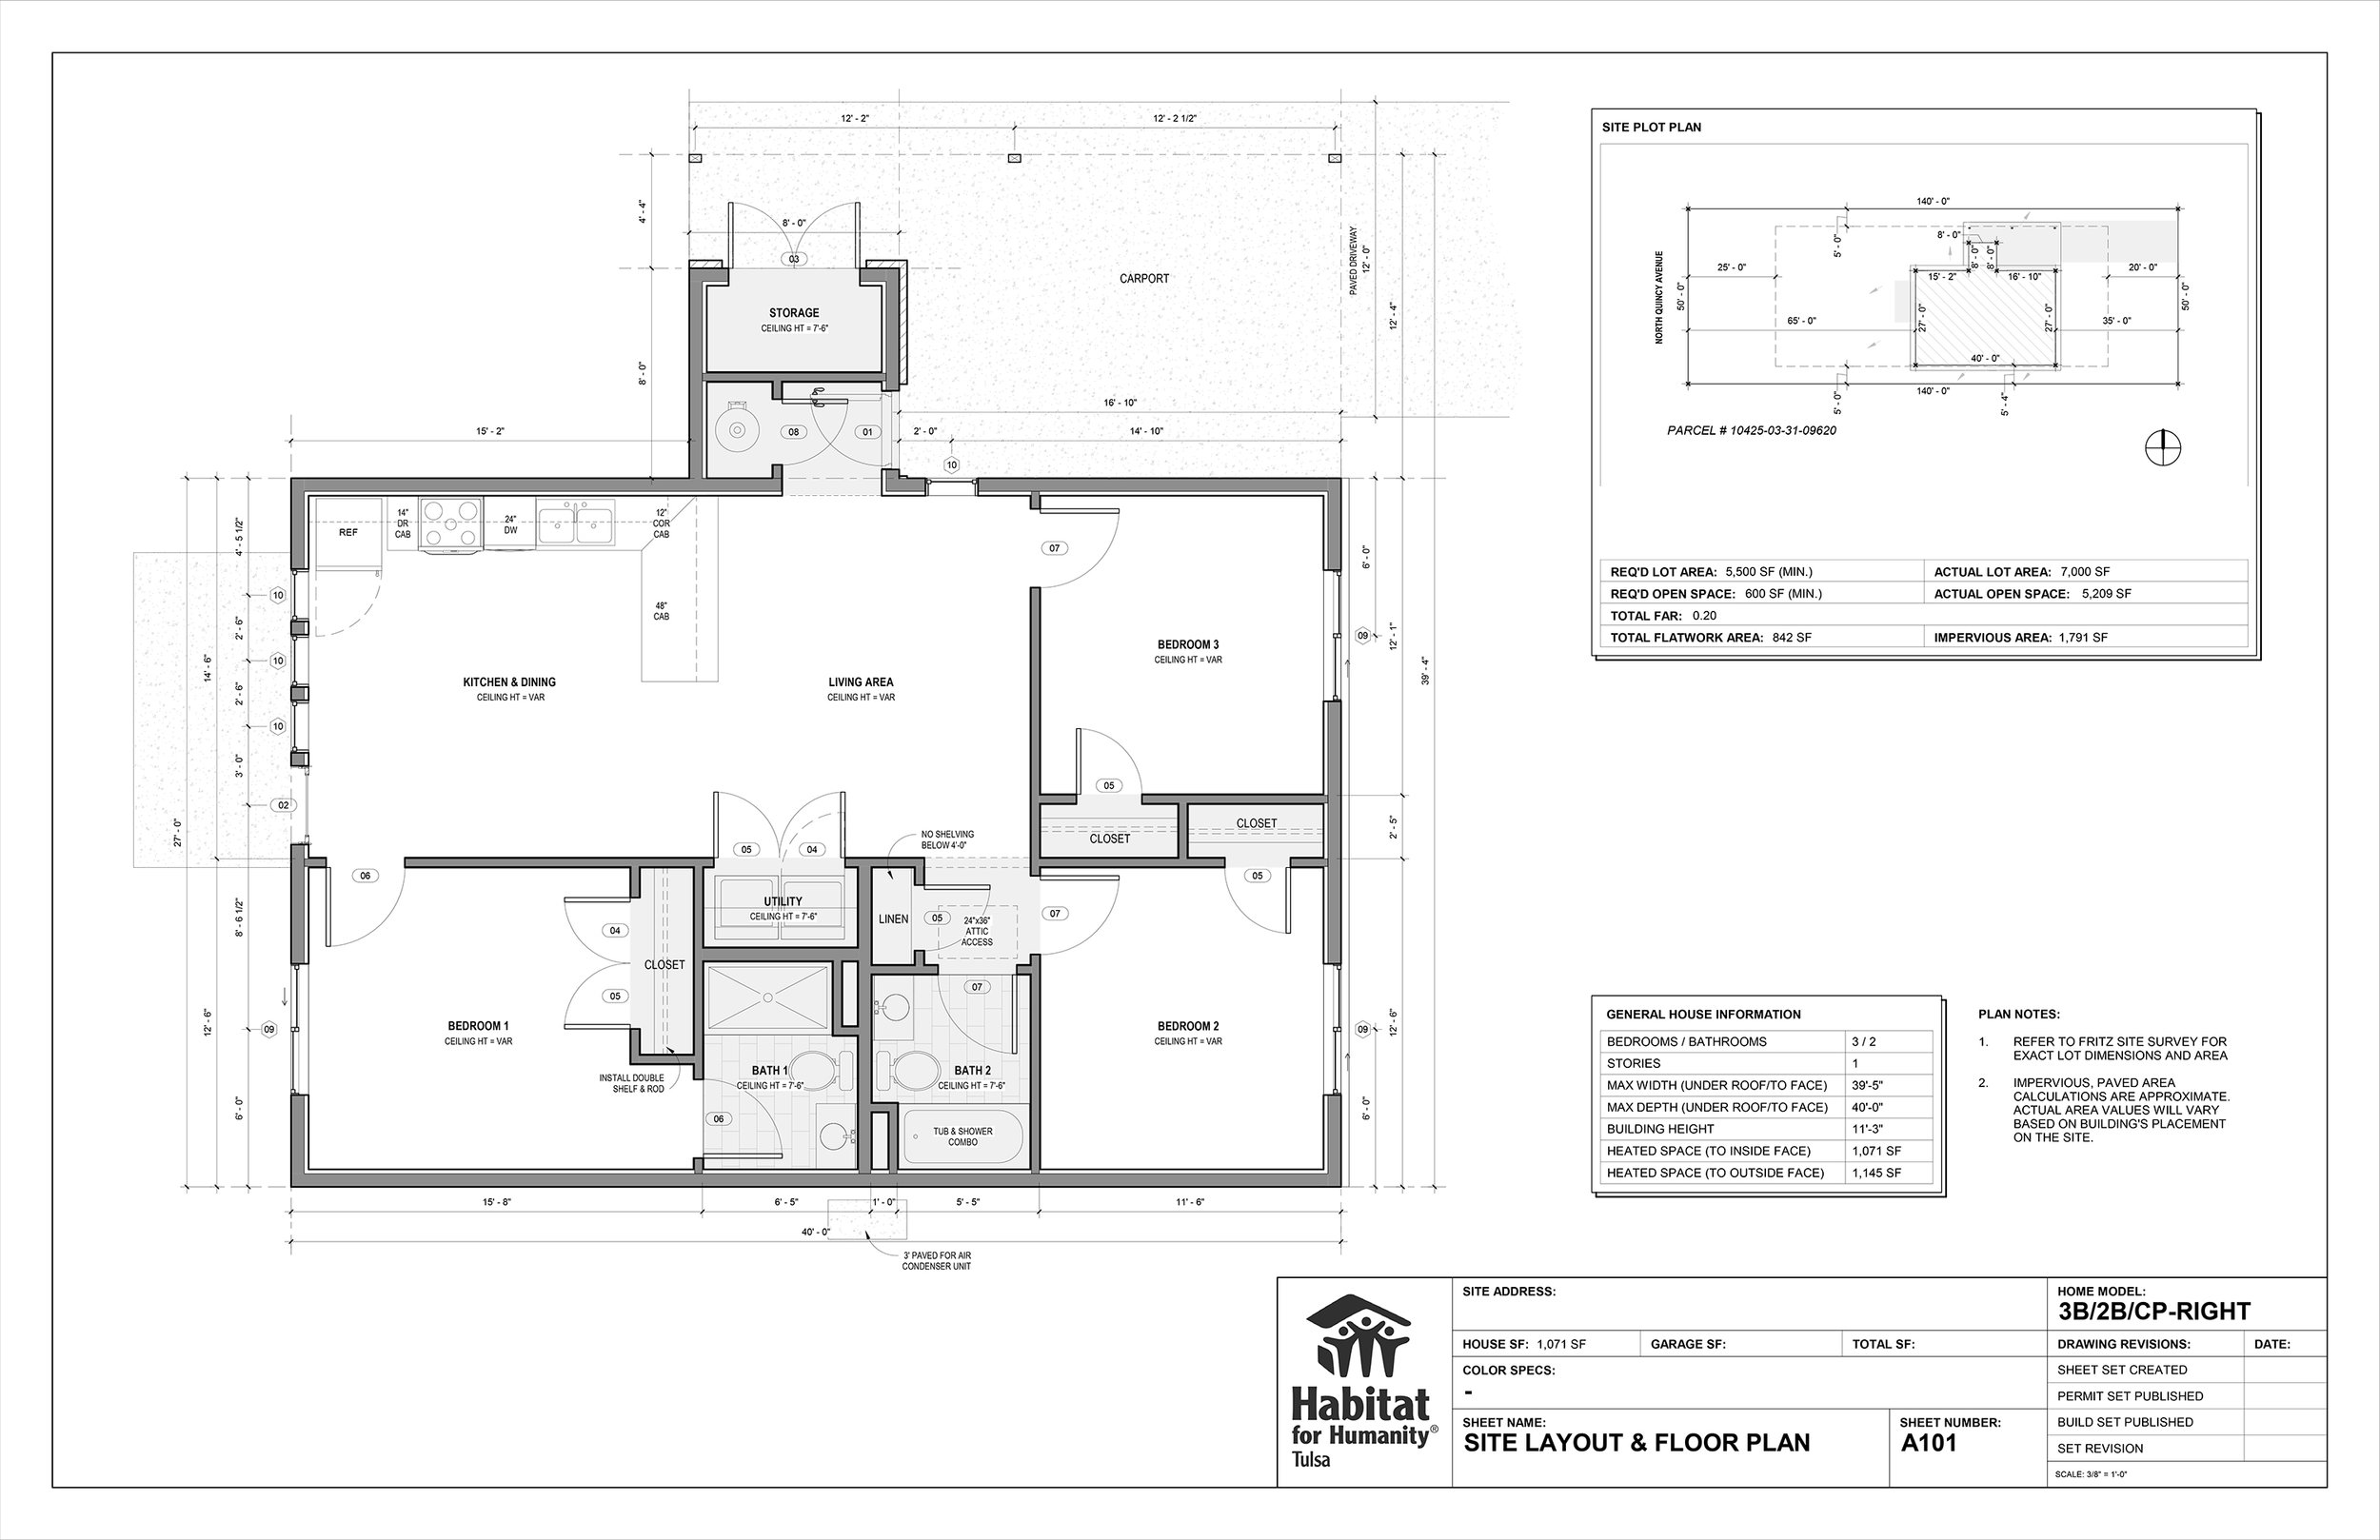 Site Layout & Floor Plan-1.jpg